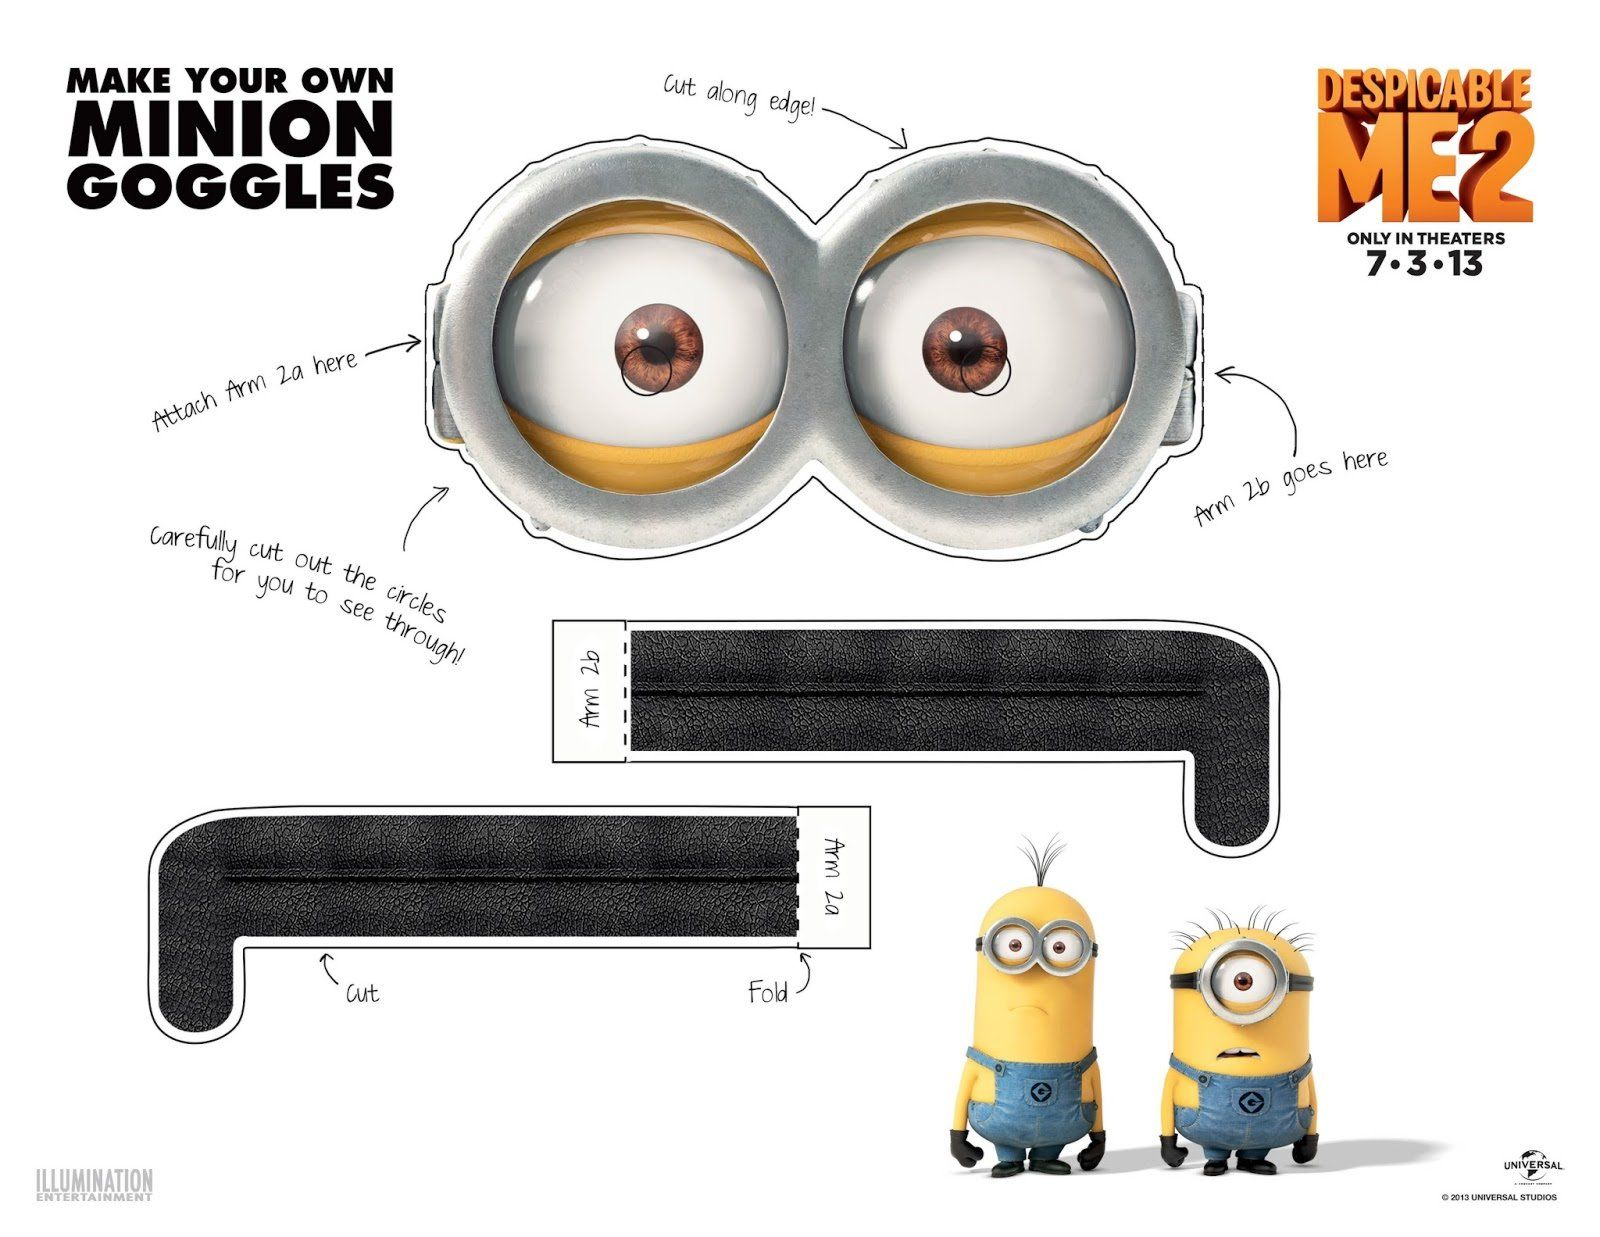 picture about Minion Goggle Printable titled Printable Minion Goggles - 2 Eyes Halloween Minion